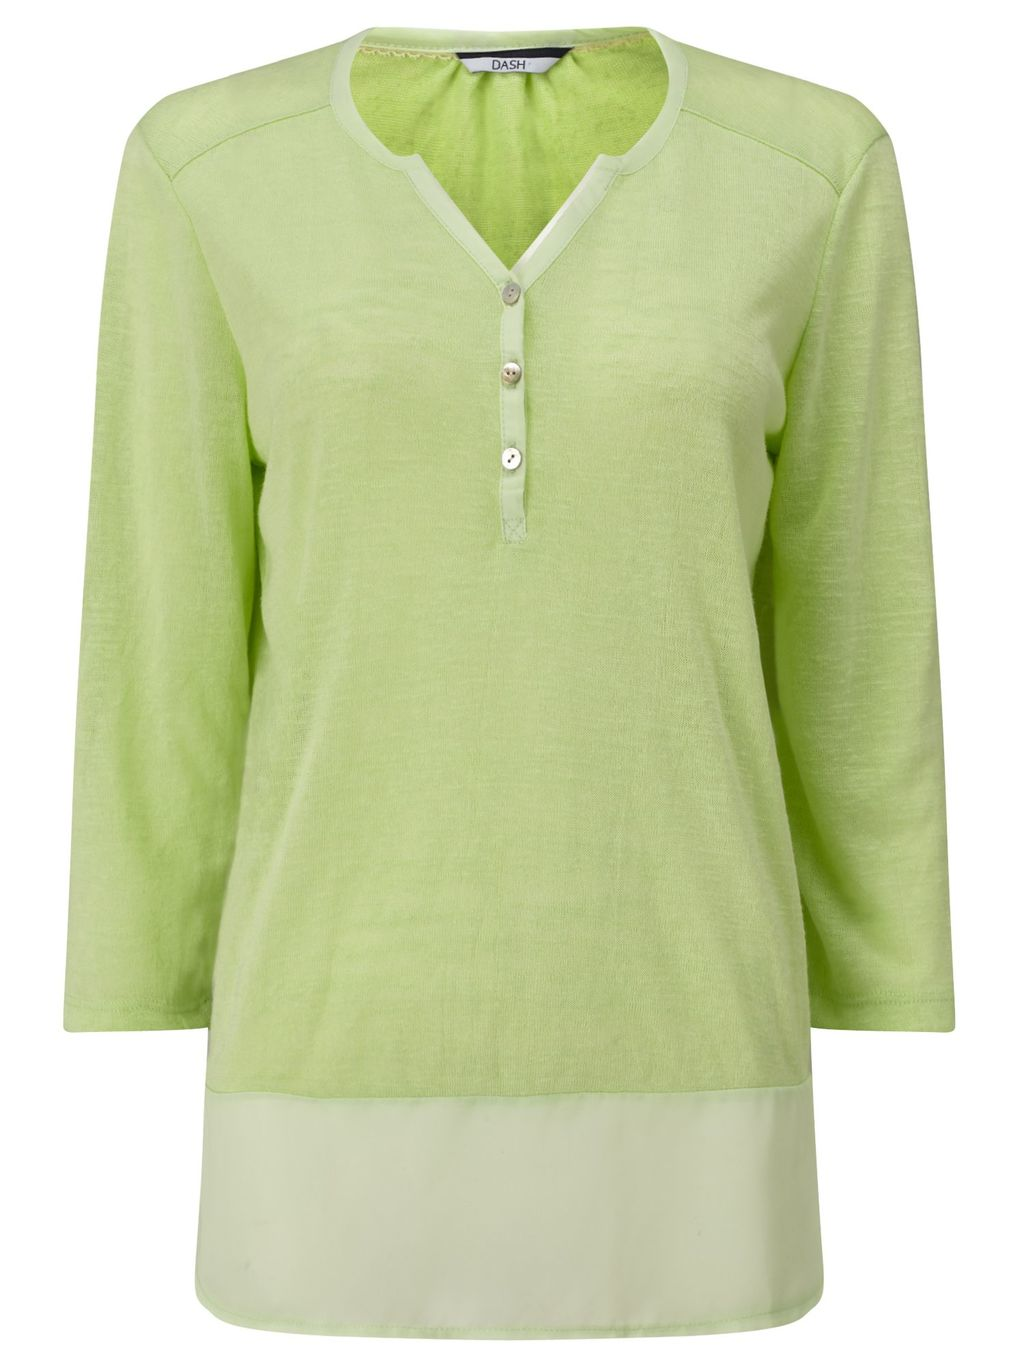 3/4 Sleeve Woven Jersey Mix, Green - neckline: v-neck; style: t-shirt; secondary colour: ivory/cream; predominant colour: pistachio; occasions: casual; length: standard; fibres: cotton - stretch; fit: straight cut; sleeve length: 3/4 length; sleeve style: standard; pattern type: fabric; pattern size: standard; pattern: colourblock; texture group: jersey - stretchy/drapey; season: s/s 2016; wardrobe: highlight; embellishment location: bust